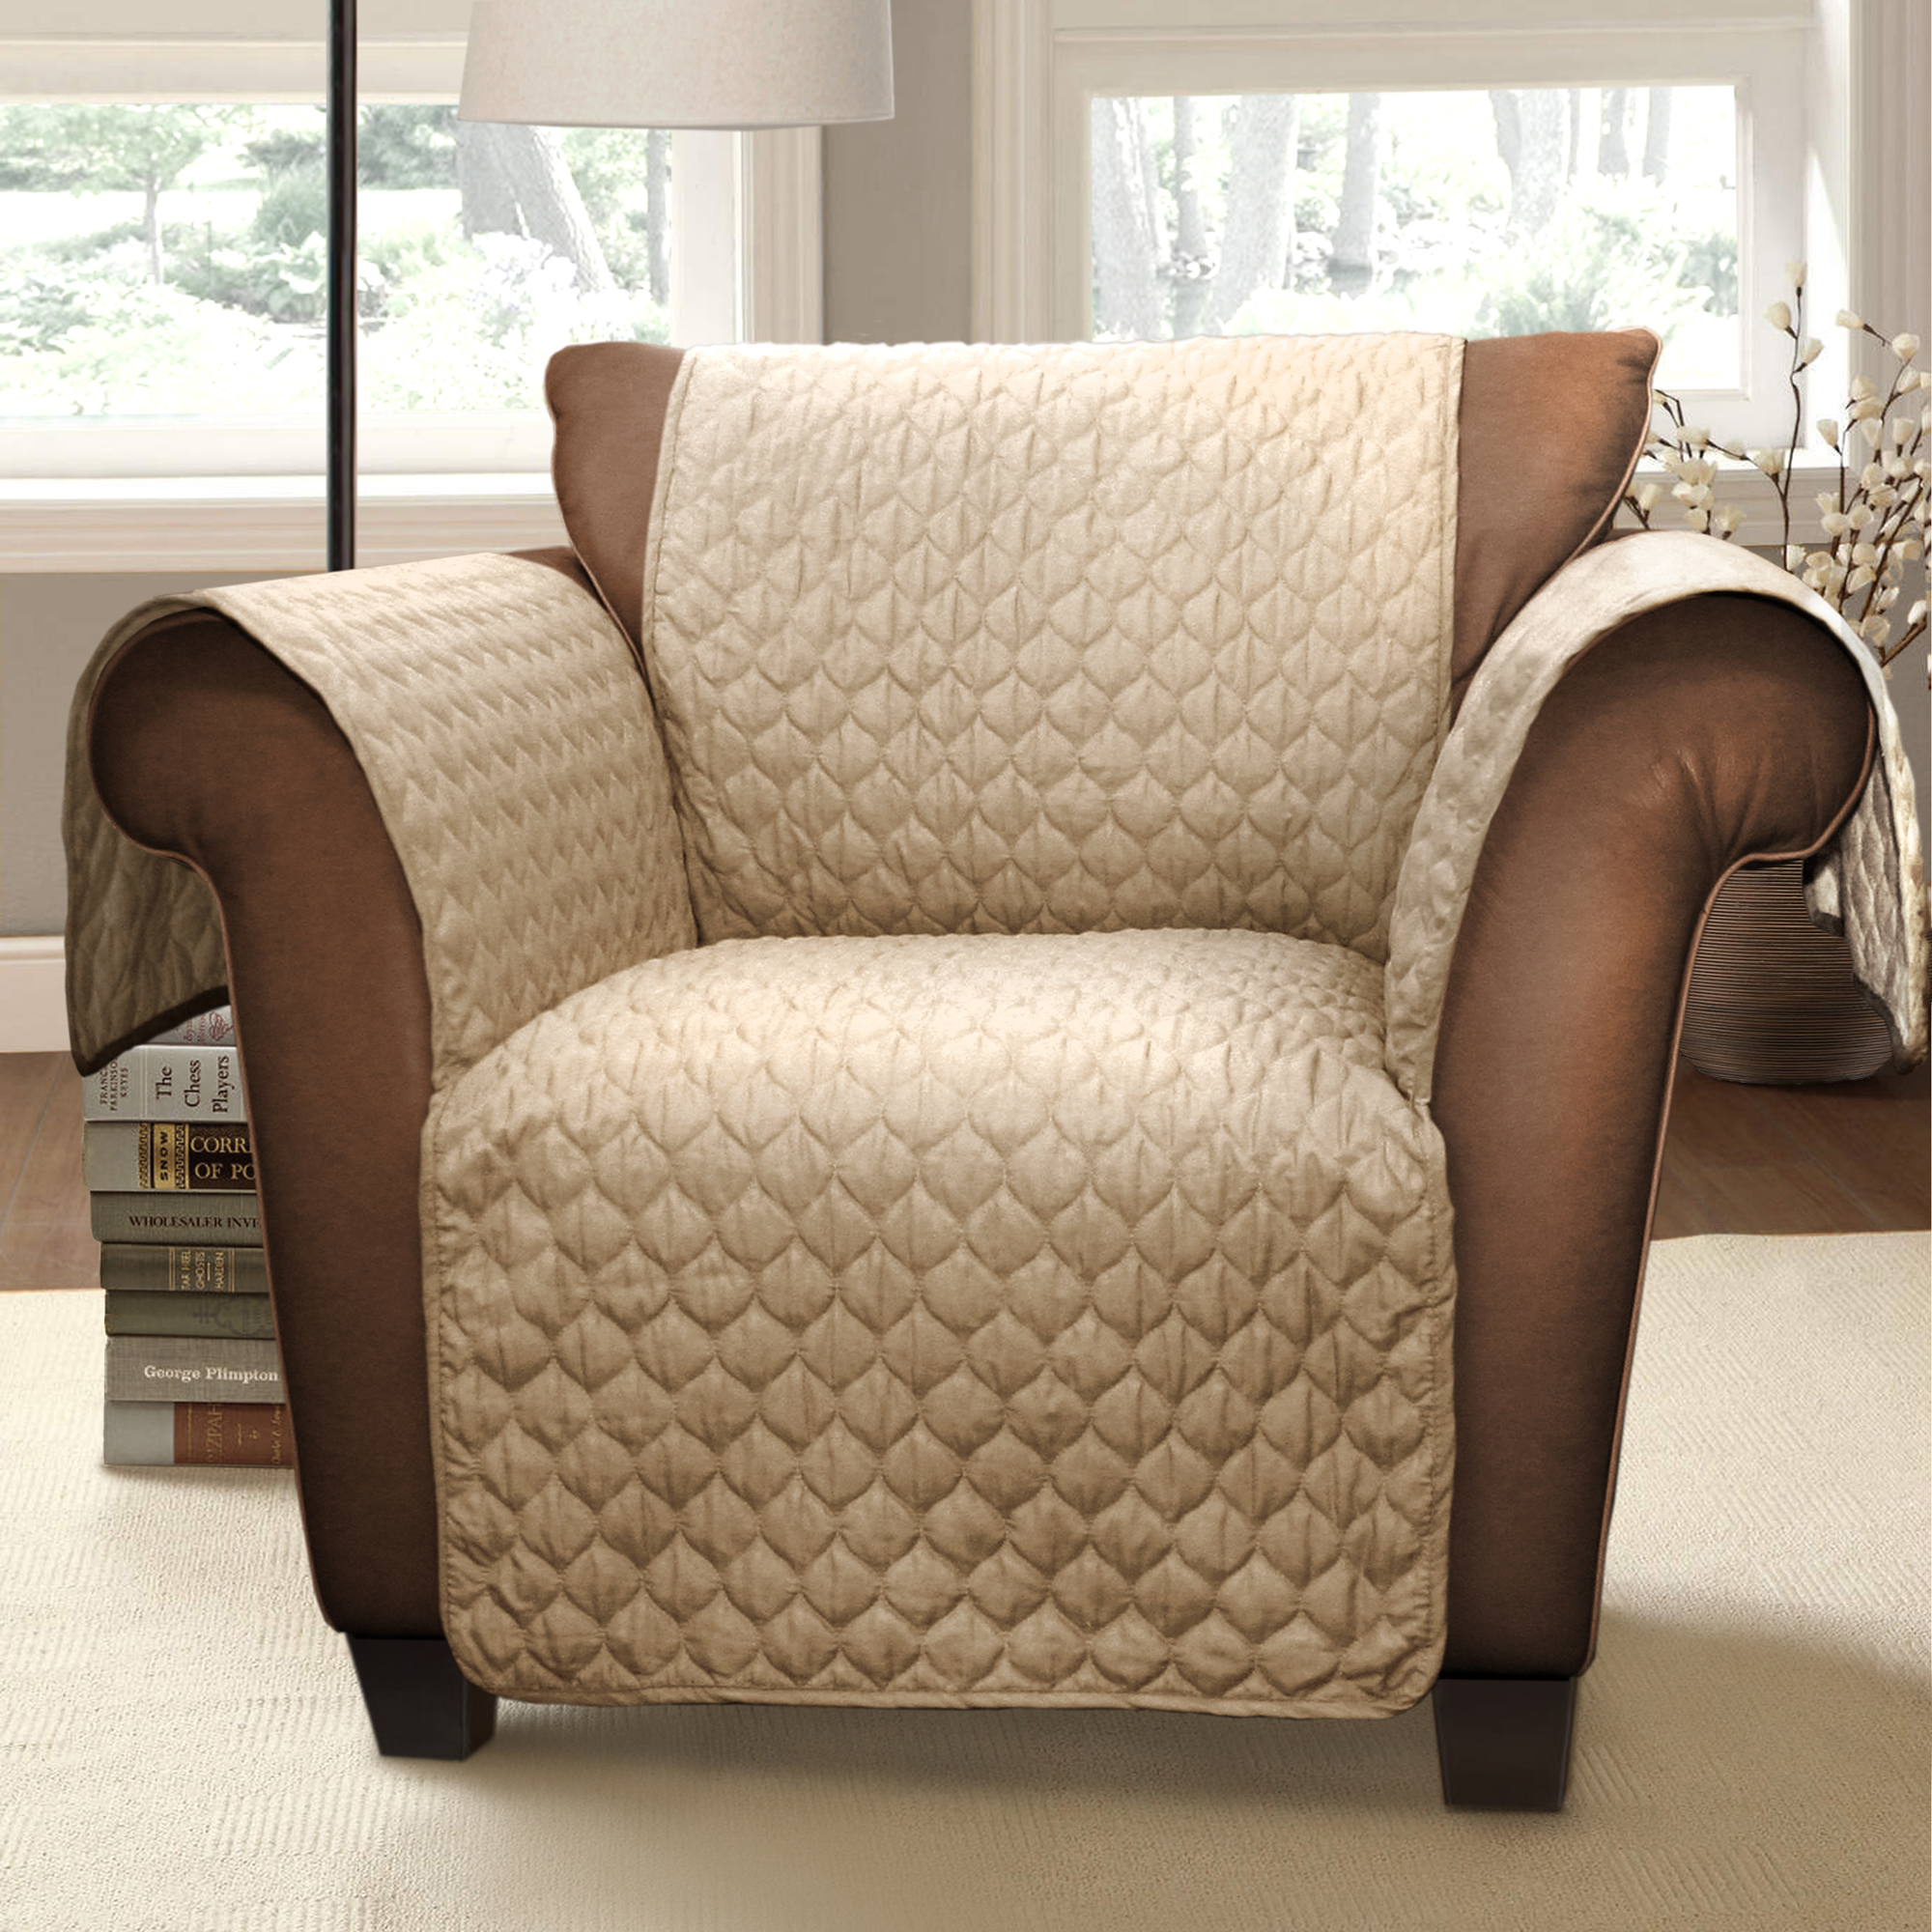 sears recliner chair covers wedding kidderminster forever new joyce furniture protector taupe armchair